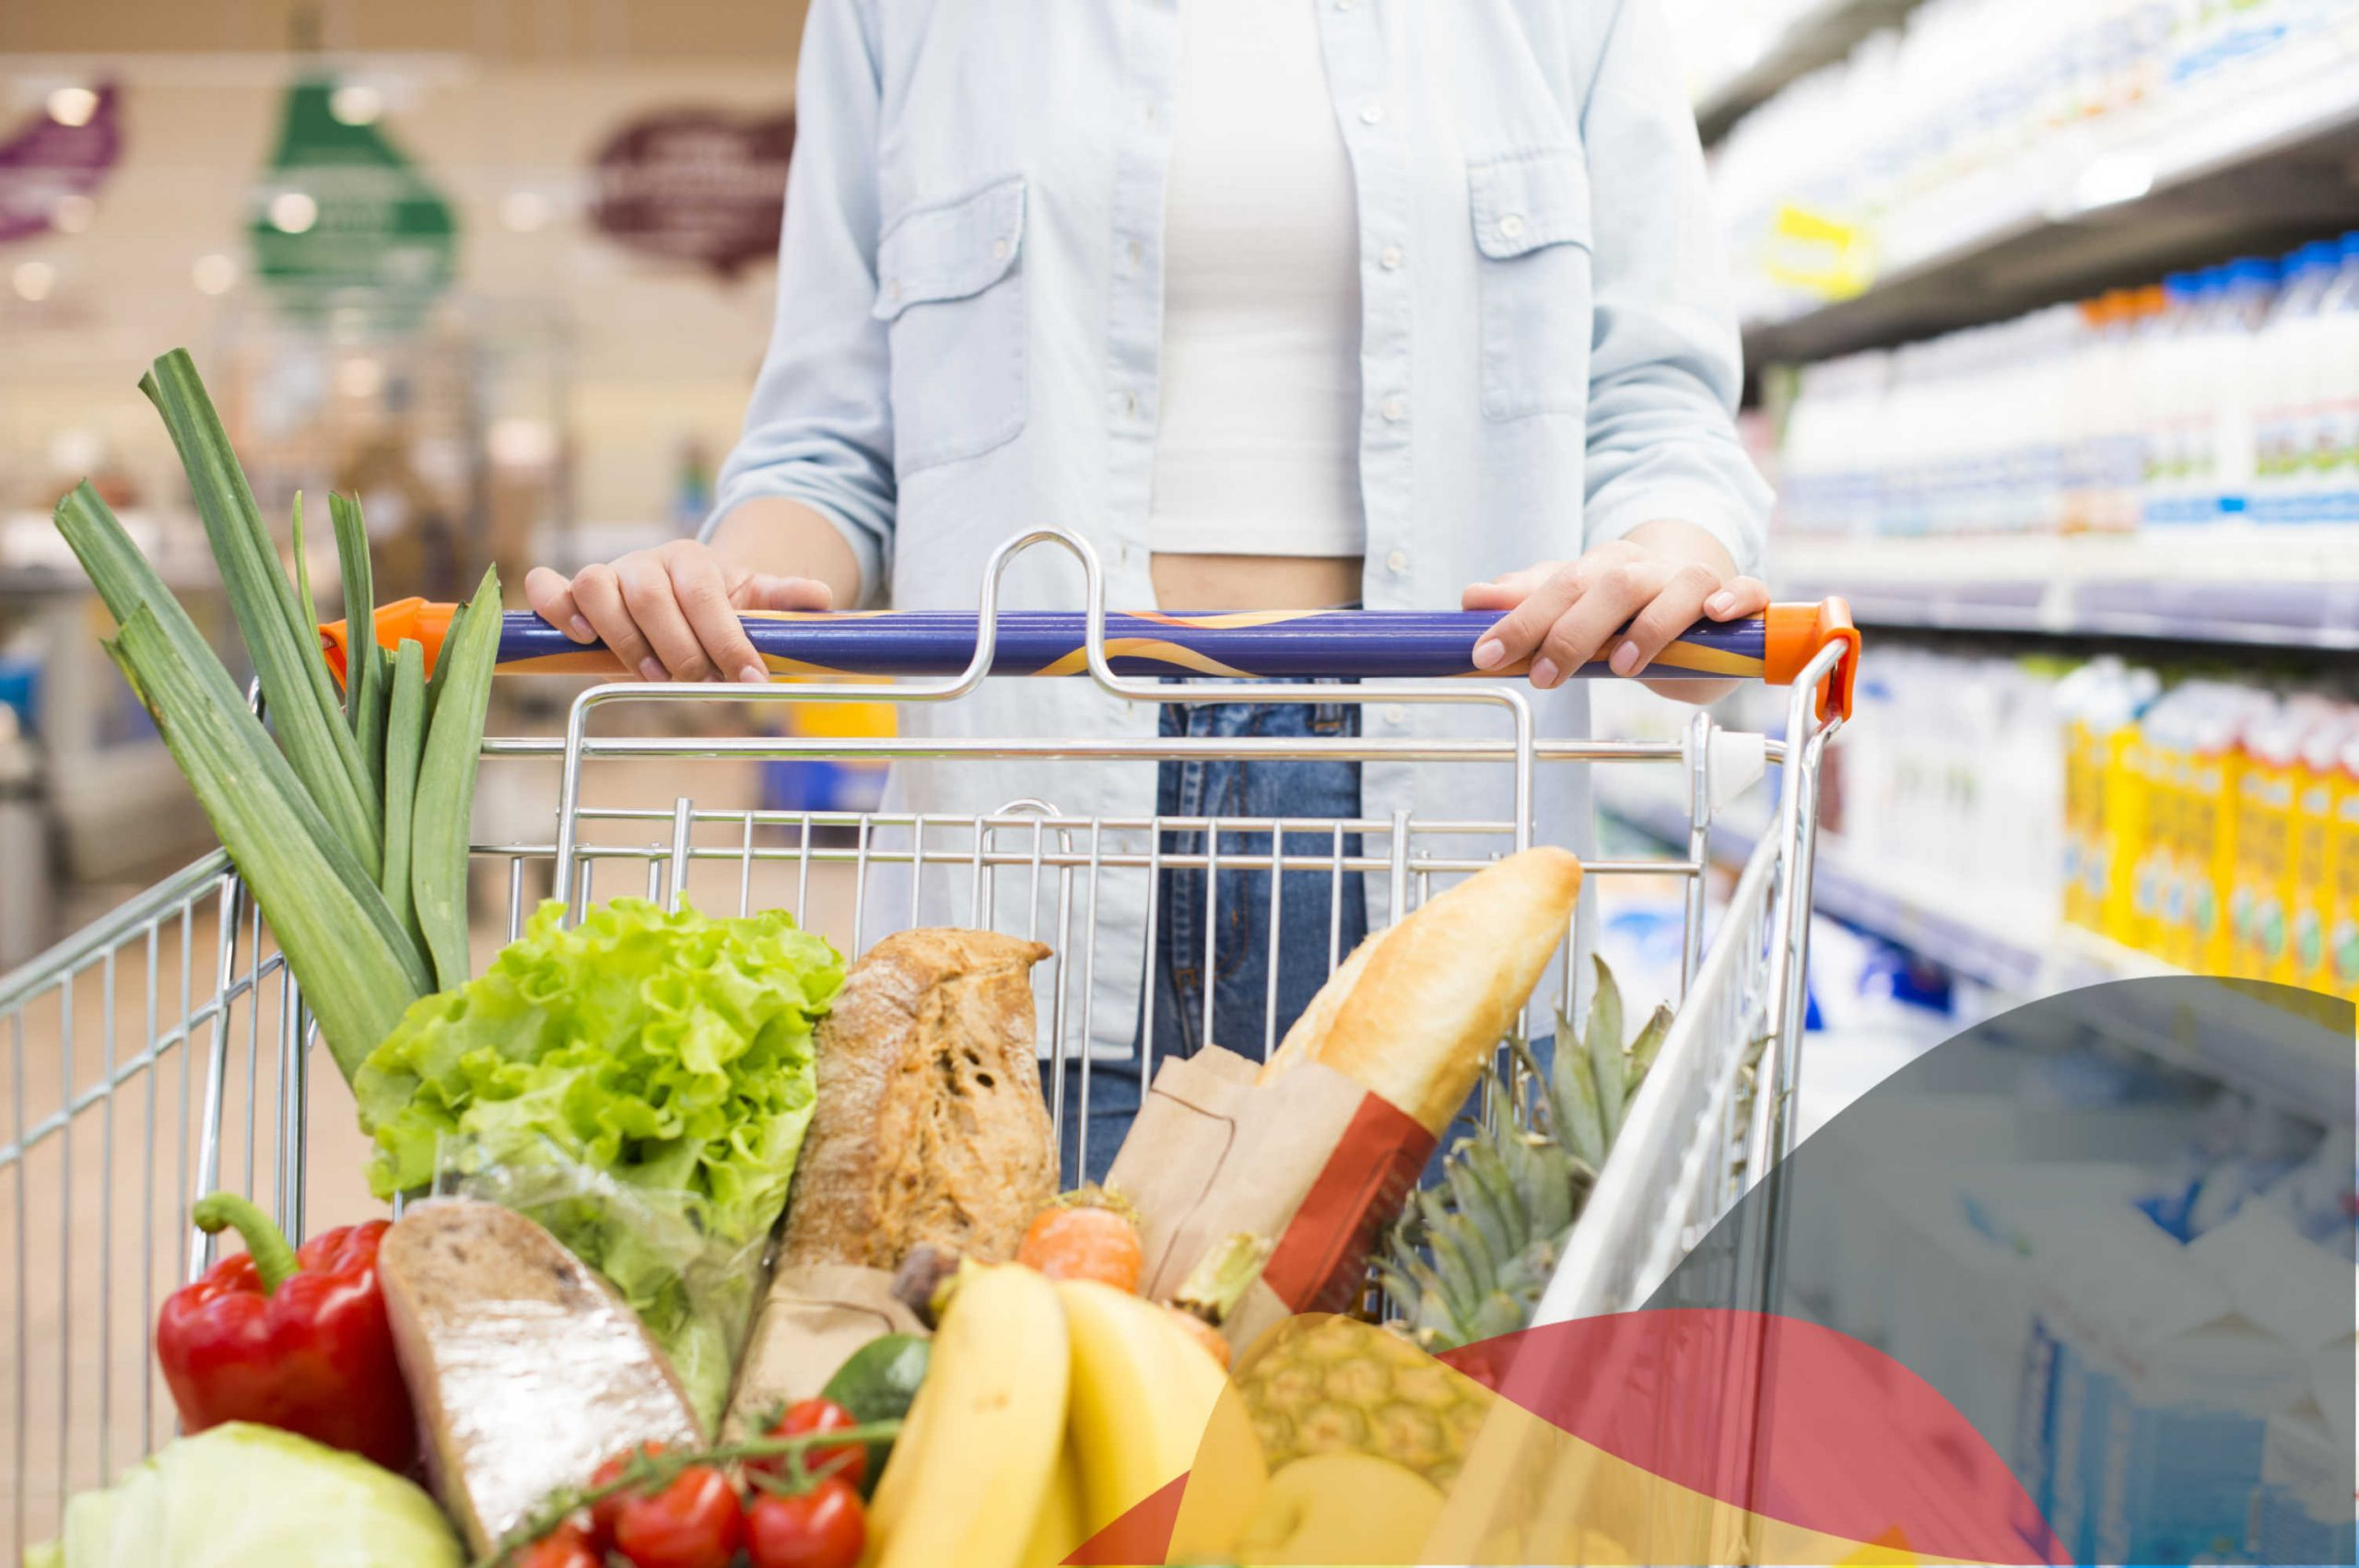 Cost of groceries in Germany